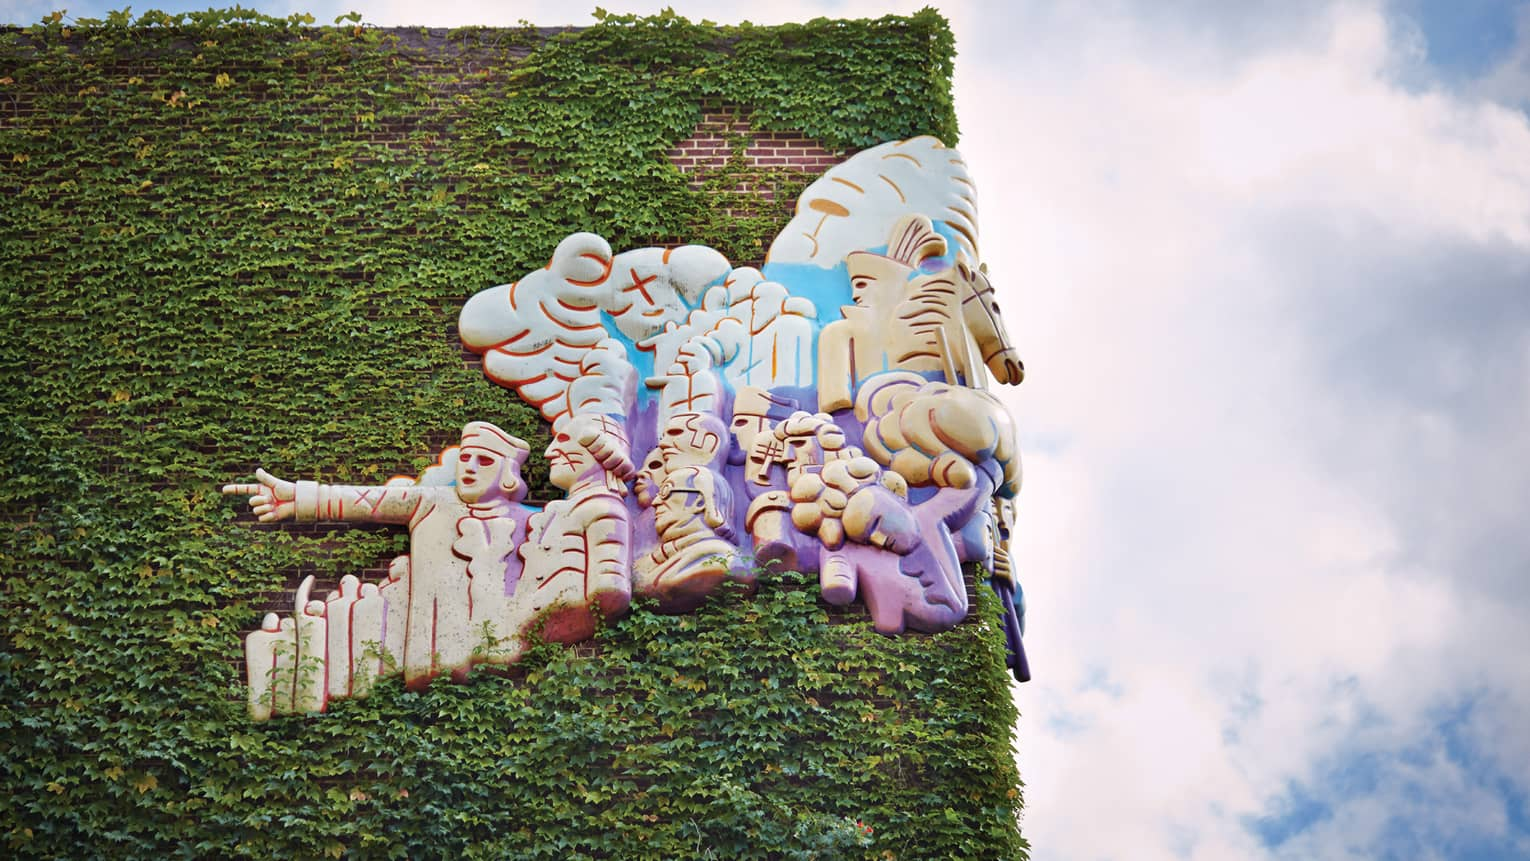 Artistic sculpture on corner of brick building covered in ivy